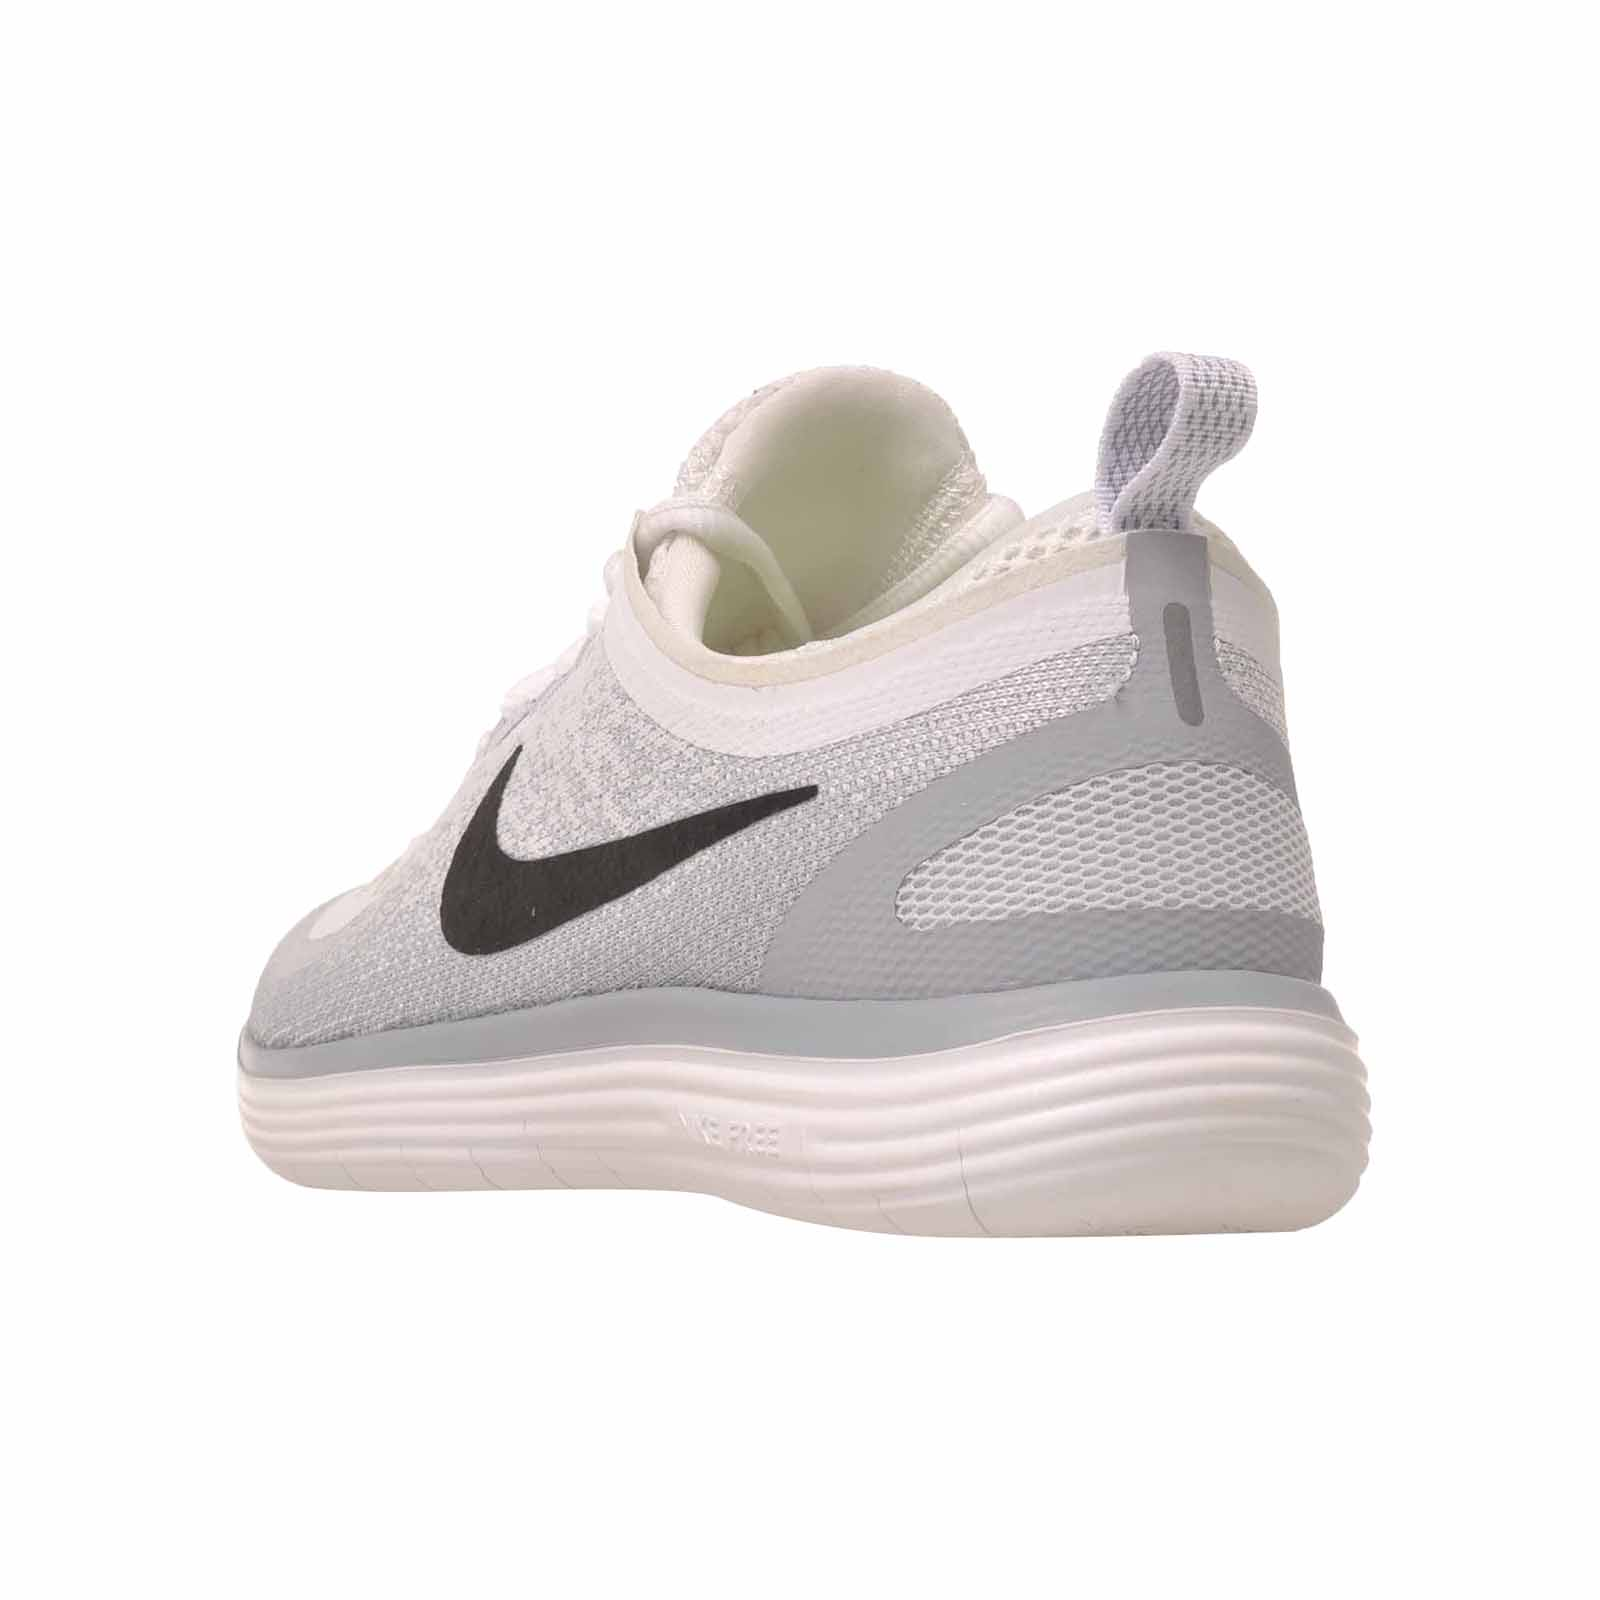 e65177ede32 Details about Nike Wmns Free RN Distance 2 Running Womens Shoes White Black  863776-100